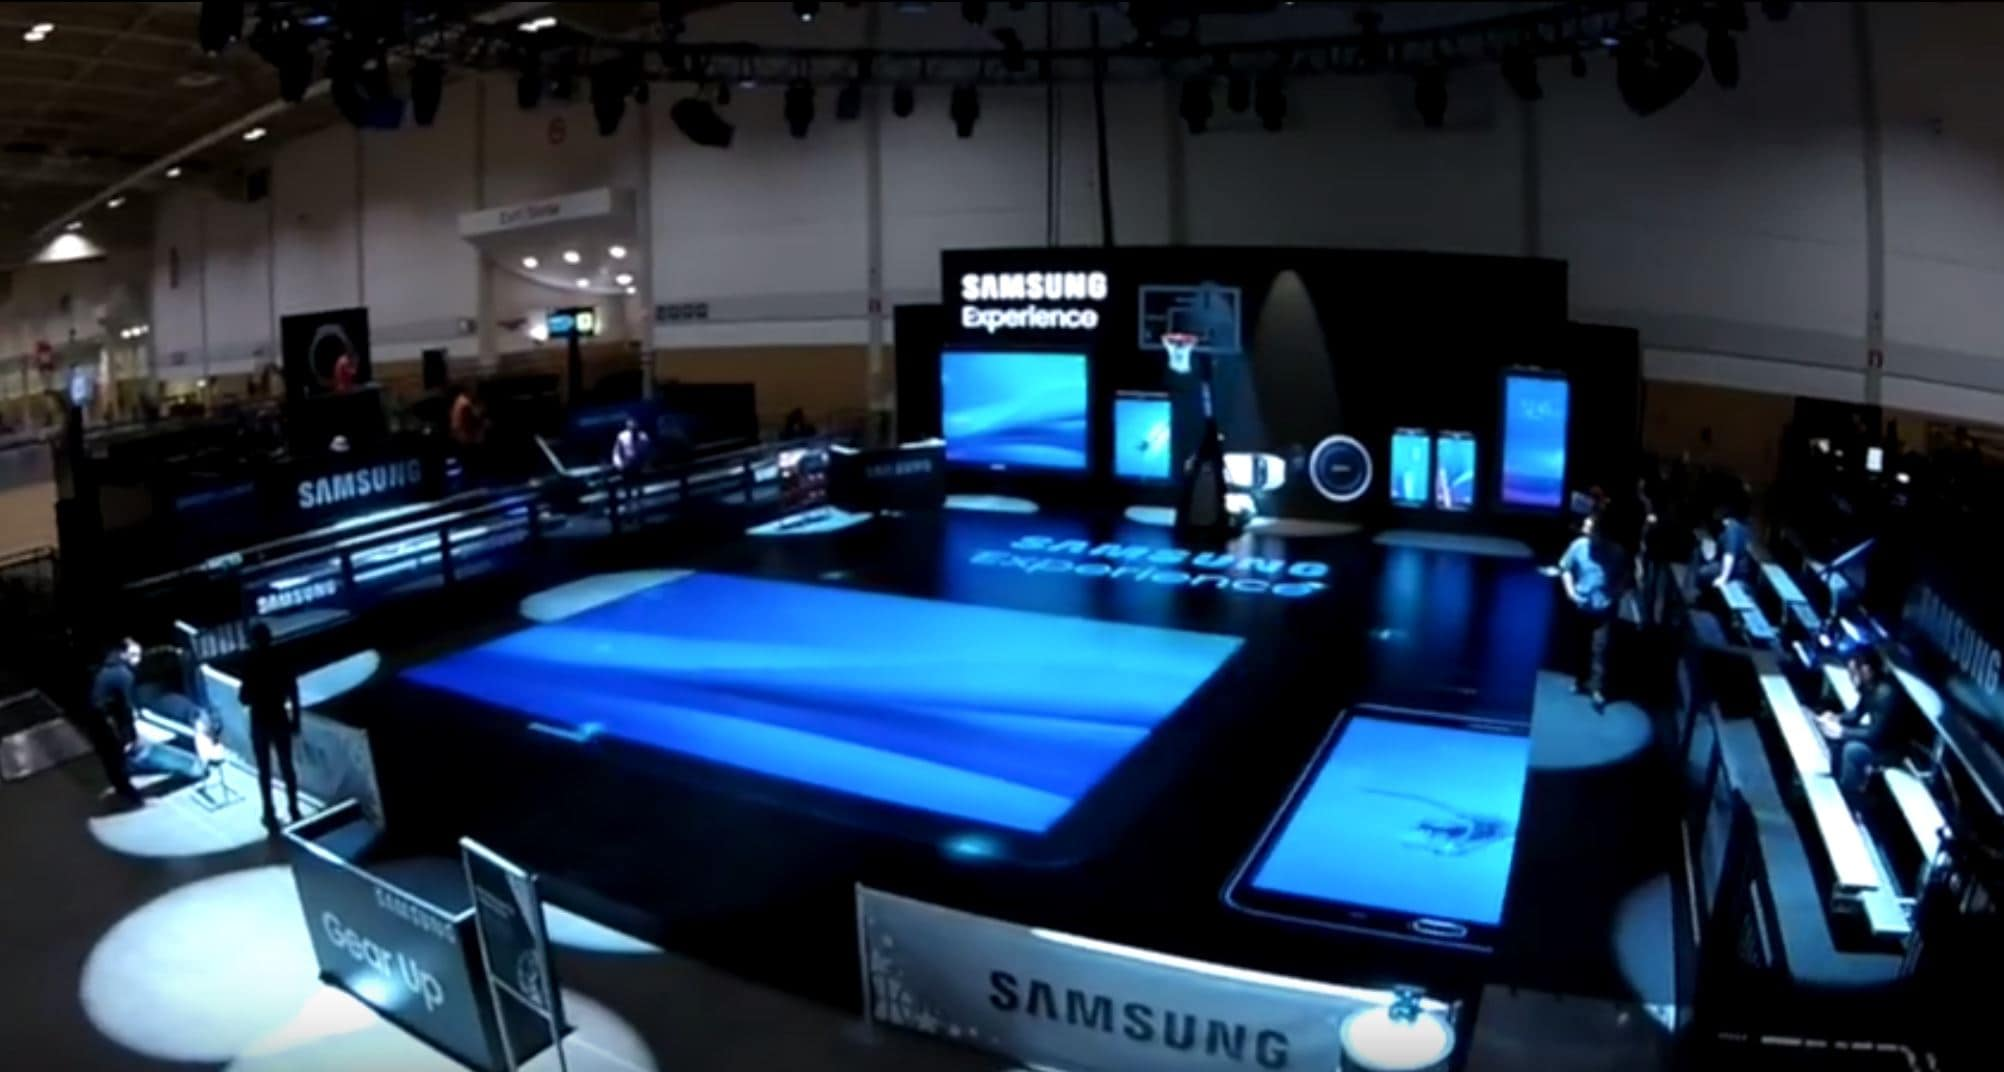 Samsung Trade Show Exhibit